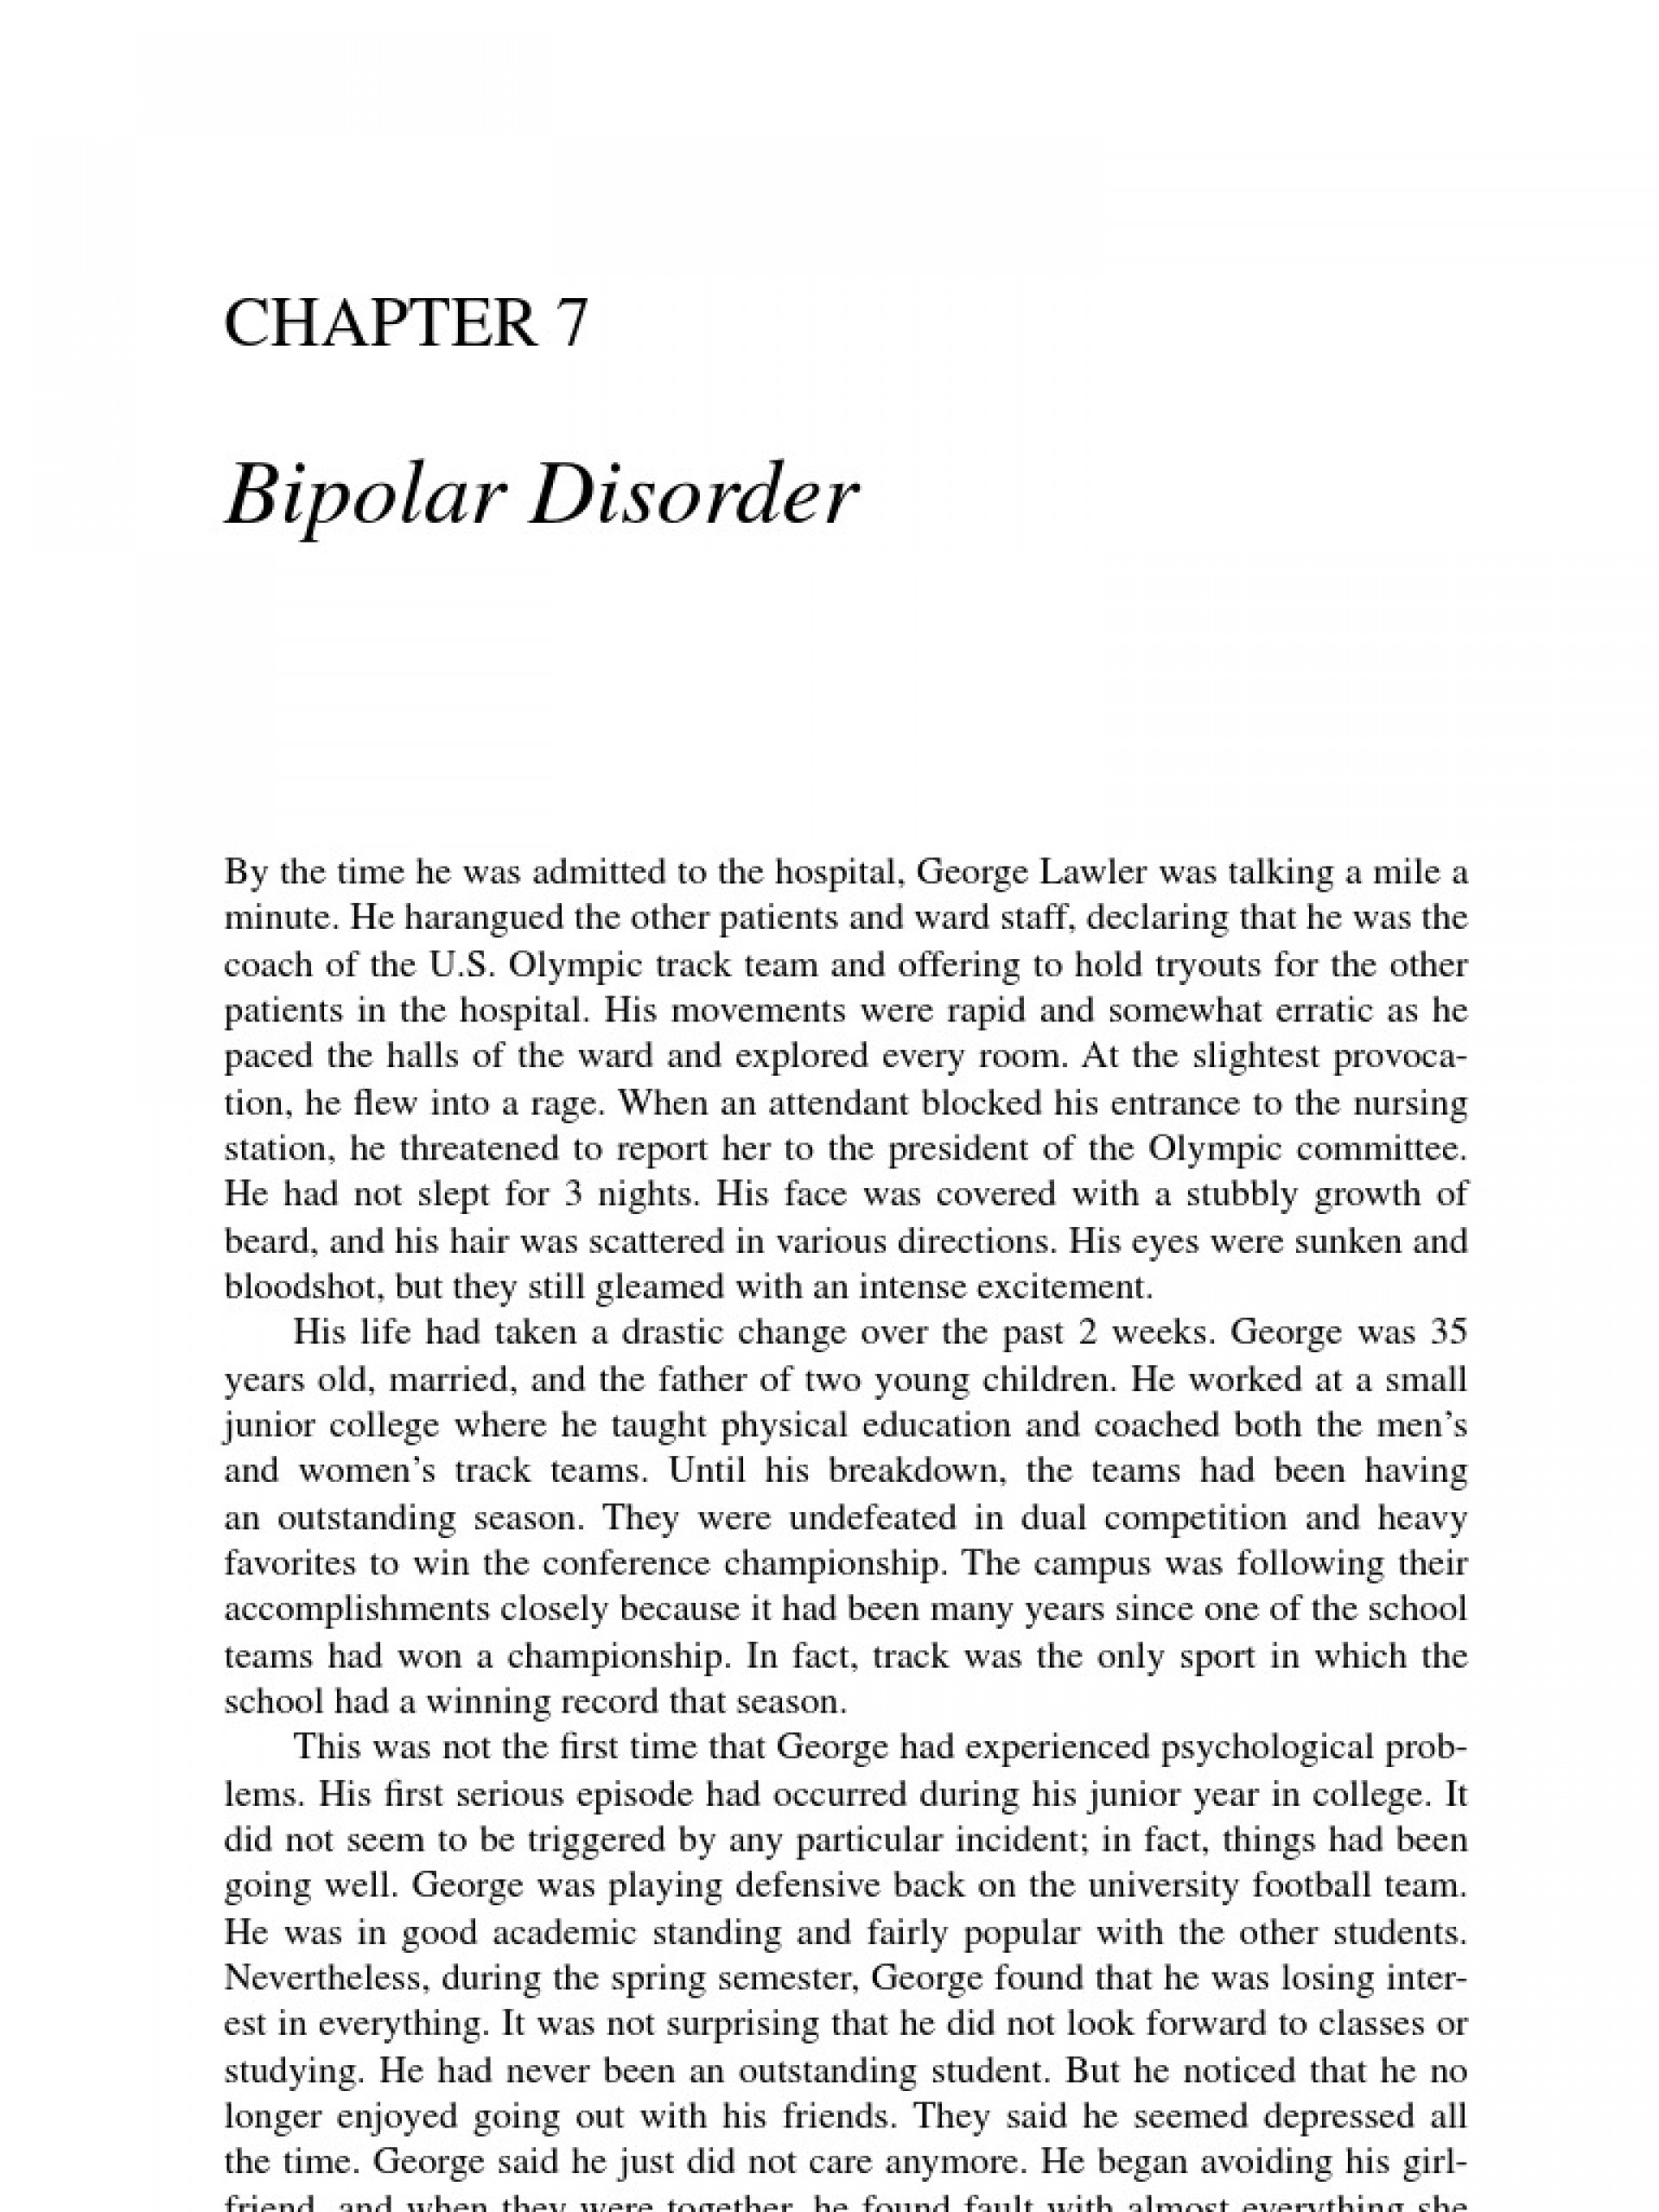 003 Research Paper Case Study Bipolar Disorder Scribd On Unusual Pdf 1920